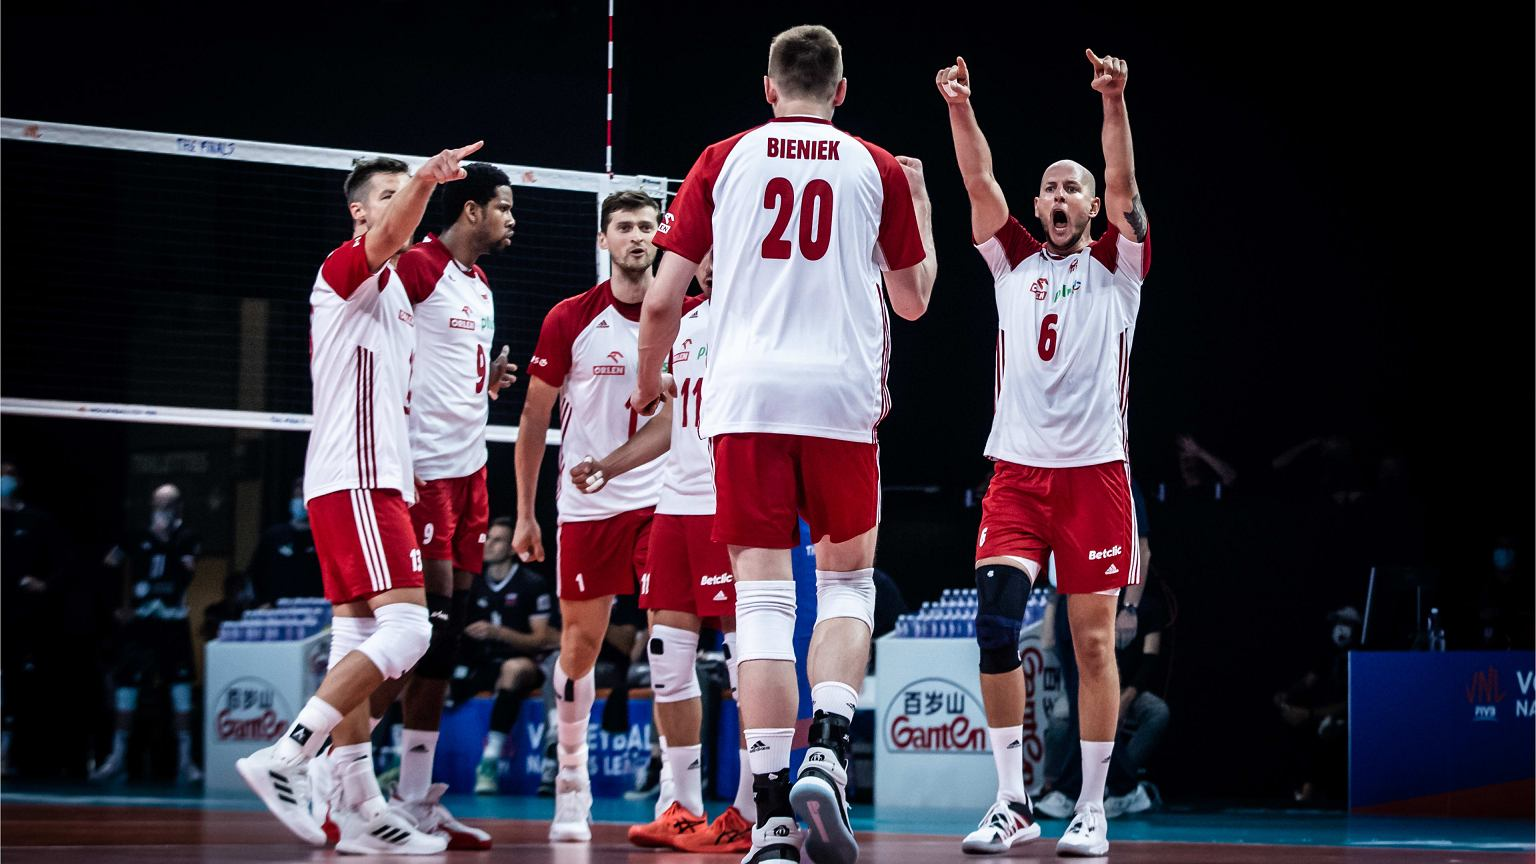 Poland lost to France 2:3 in the League of Nations volleyball match.